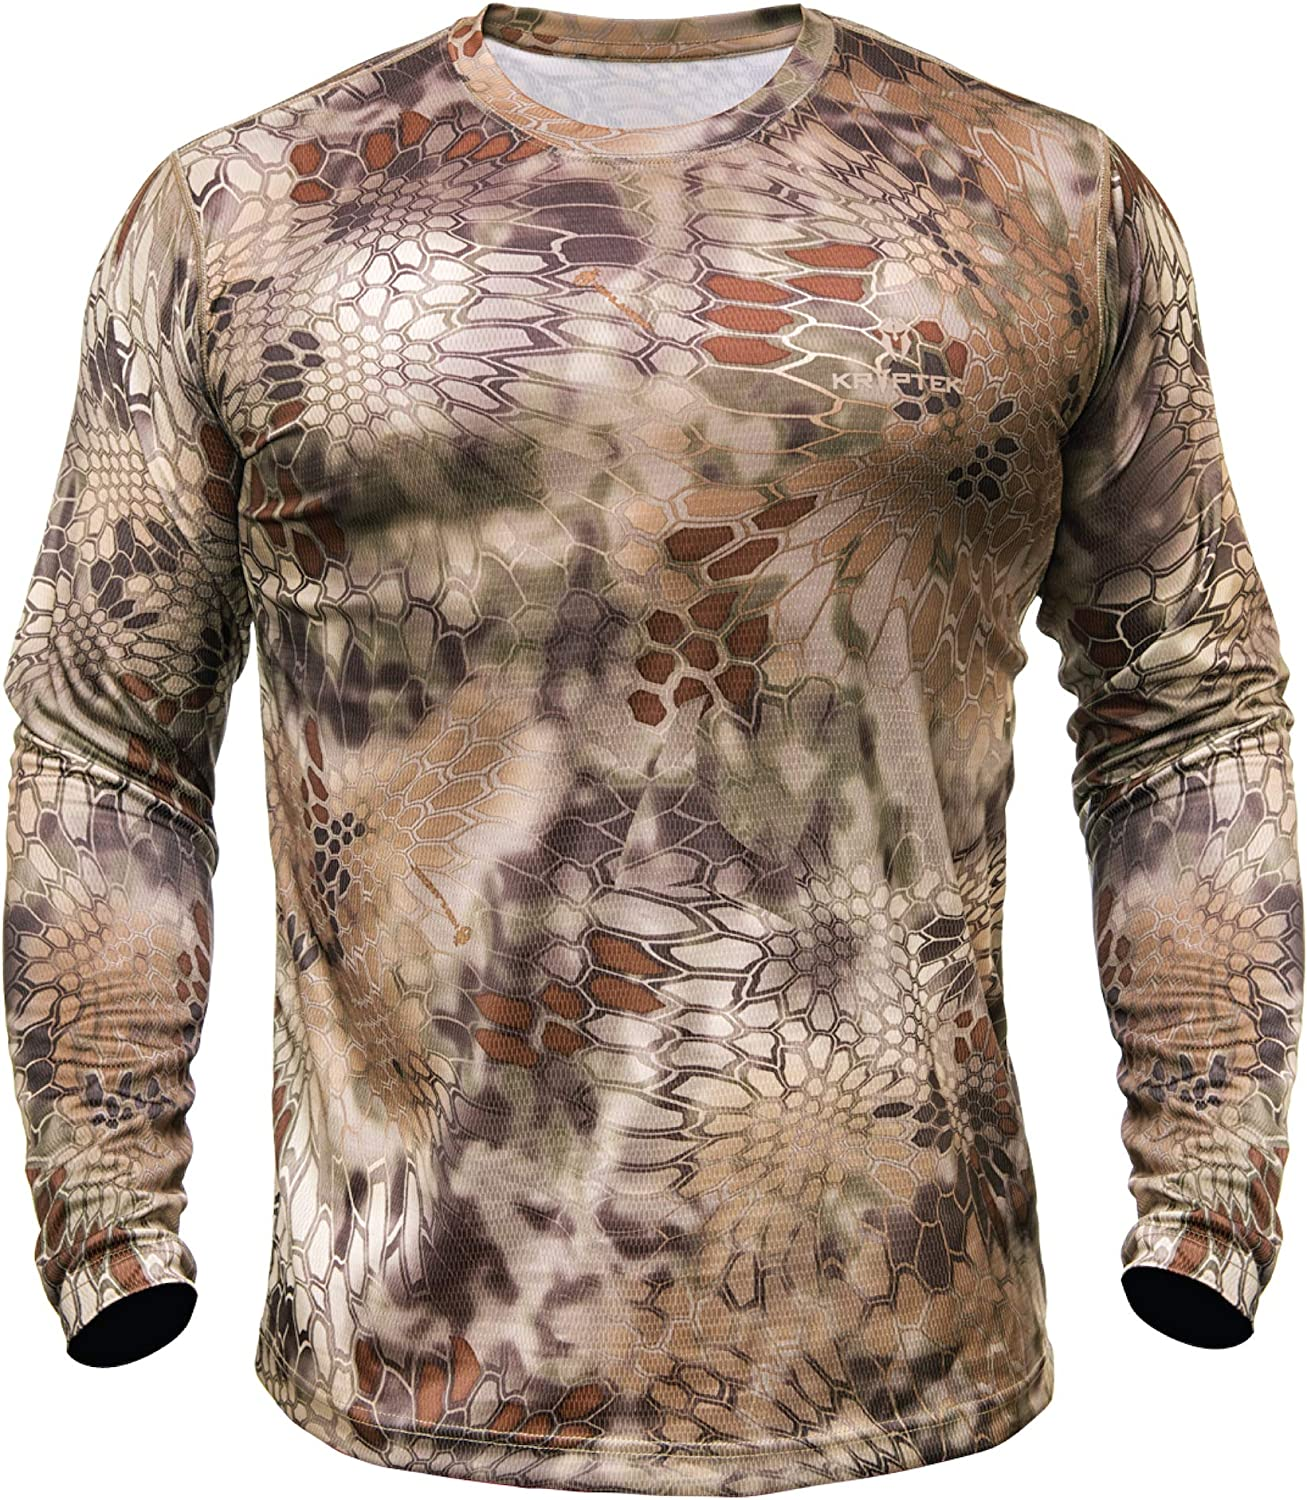 SHIRT LONG SLEEVE CAMEO FISHING OUTFIT QUICK DRY T